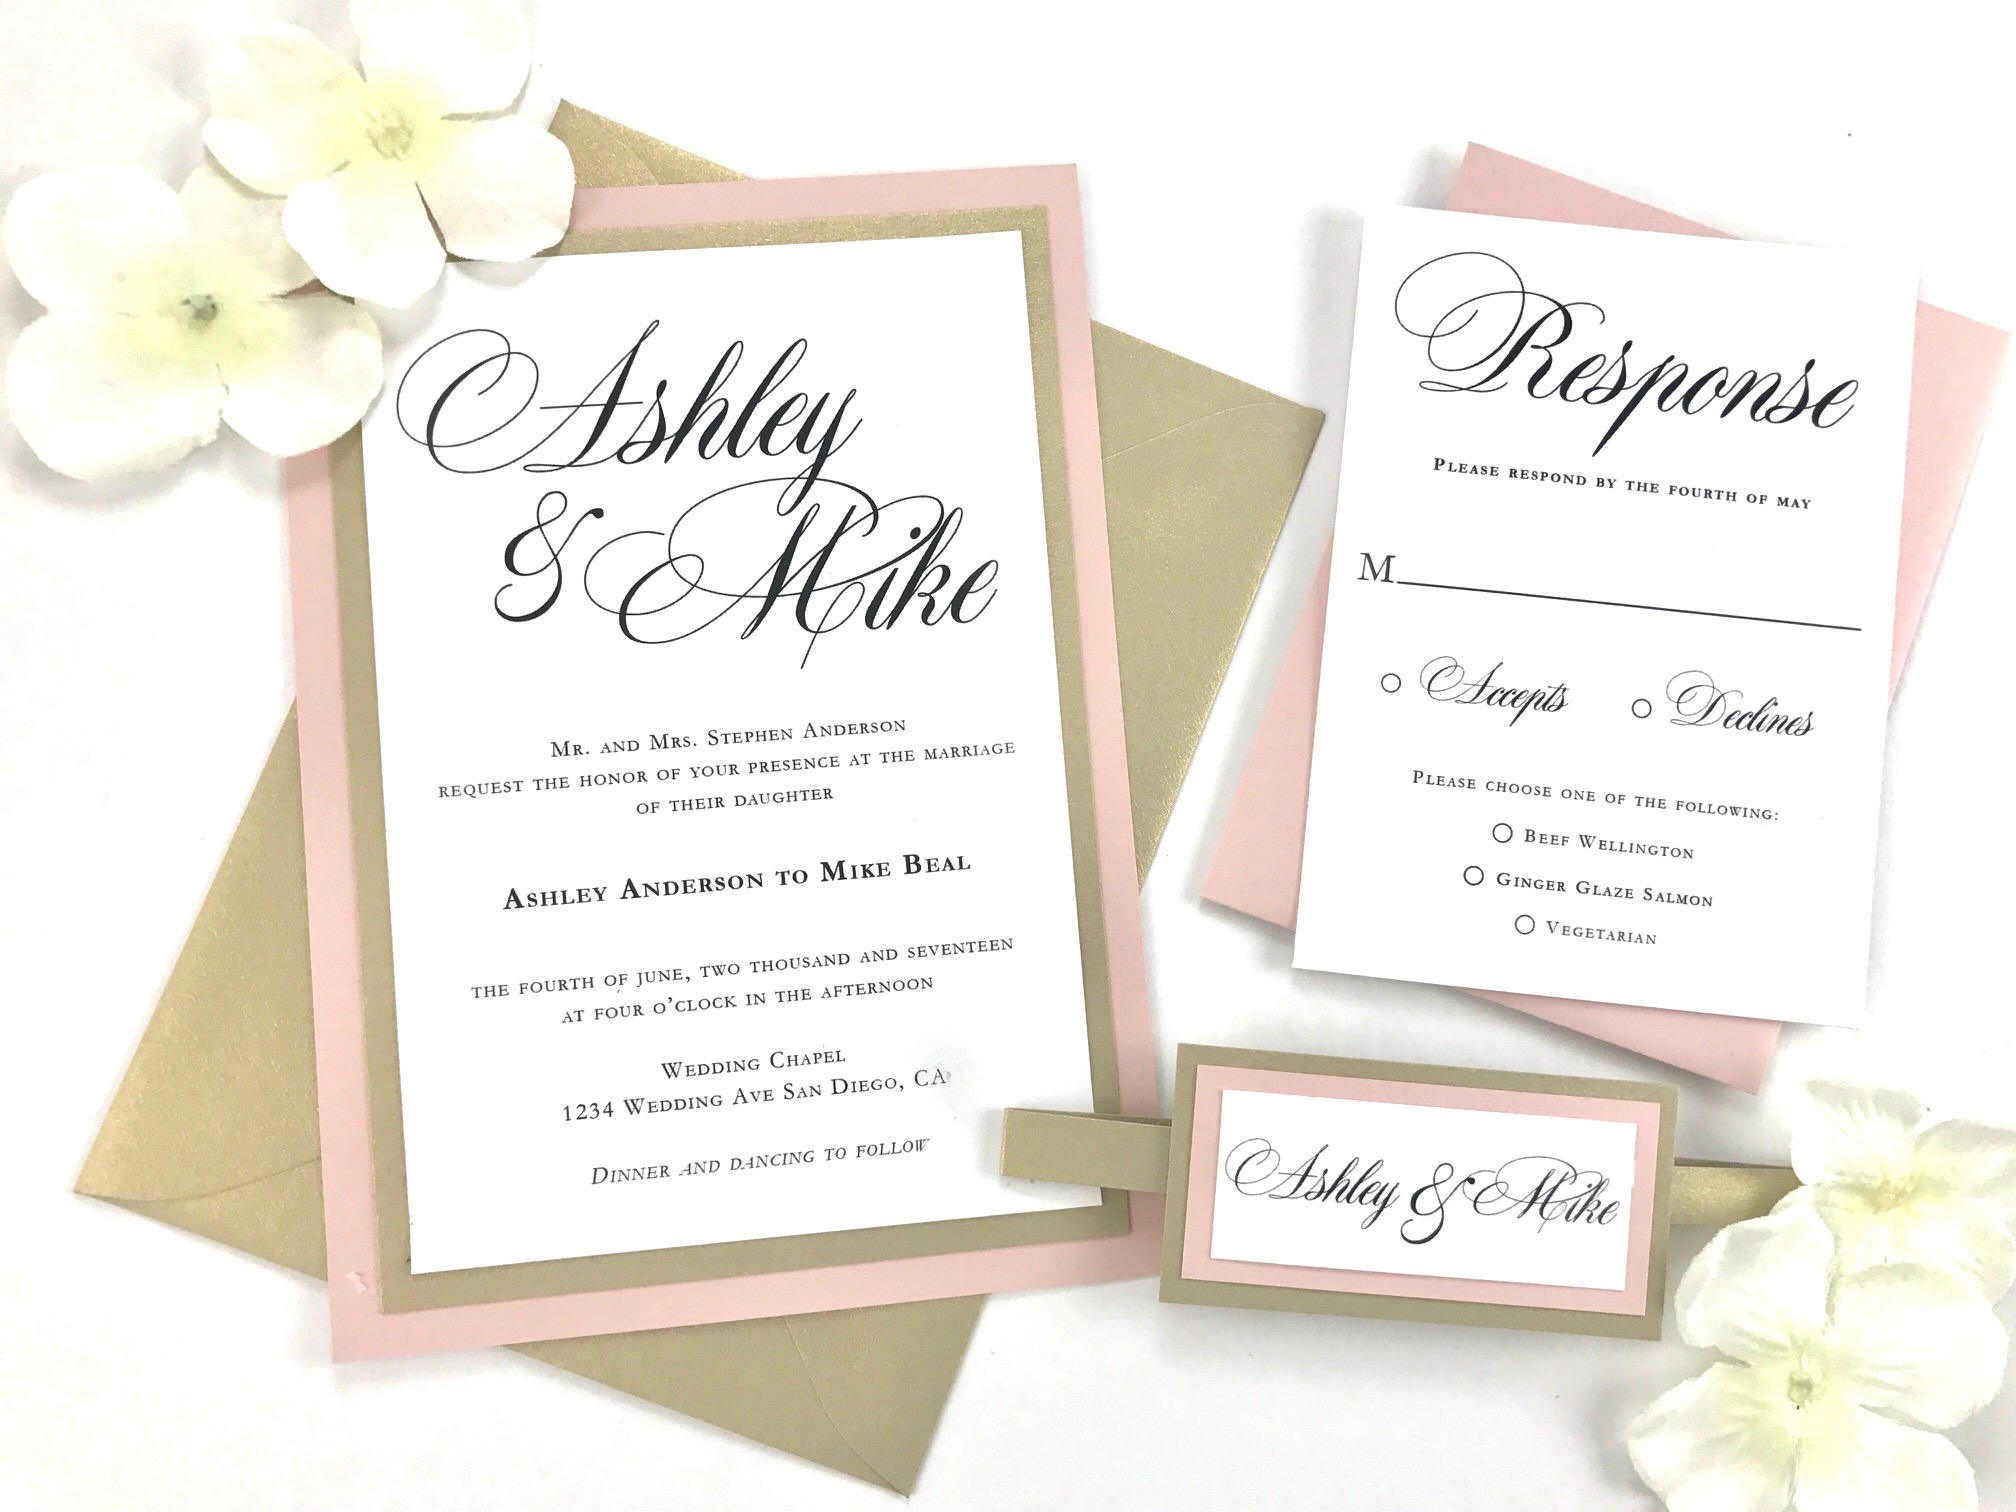 Wedding invitation suite with blush pink and gold pearlescent